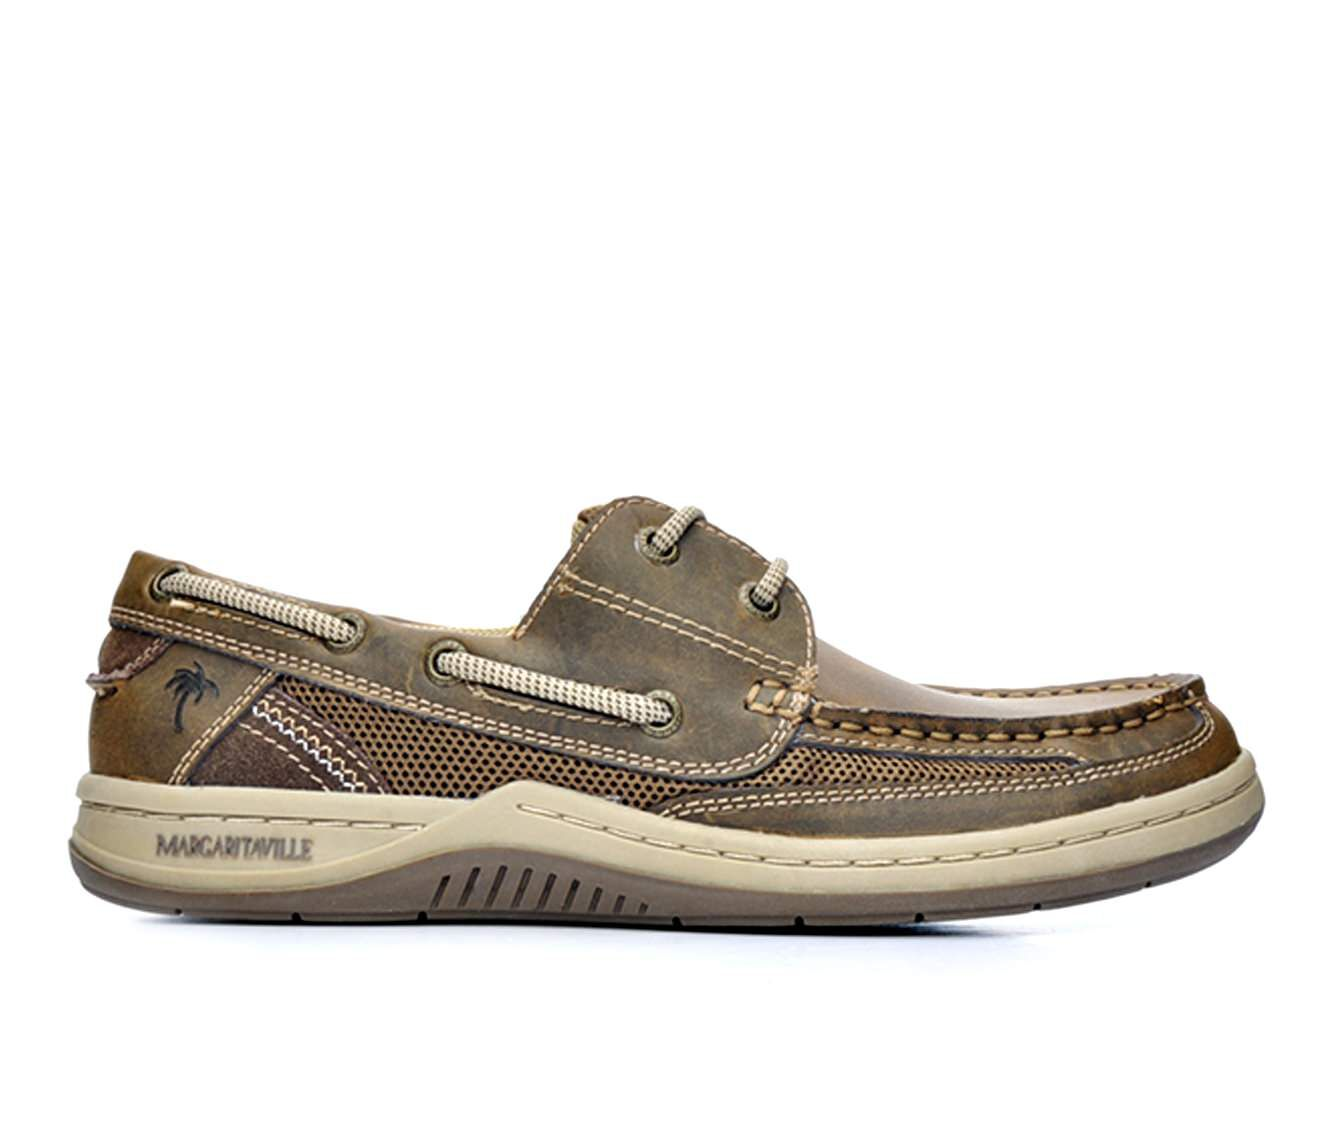 Purchase Price Men's Margaritaville Anchor 2 Eye Boat Shoes Brown